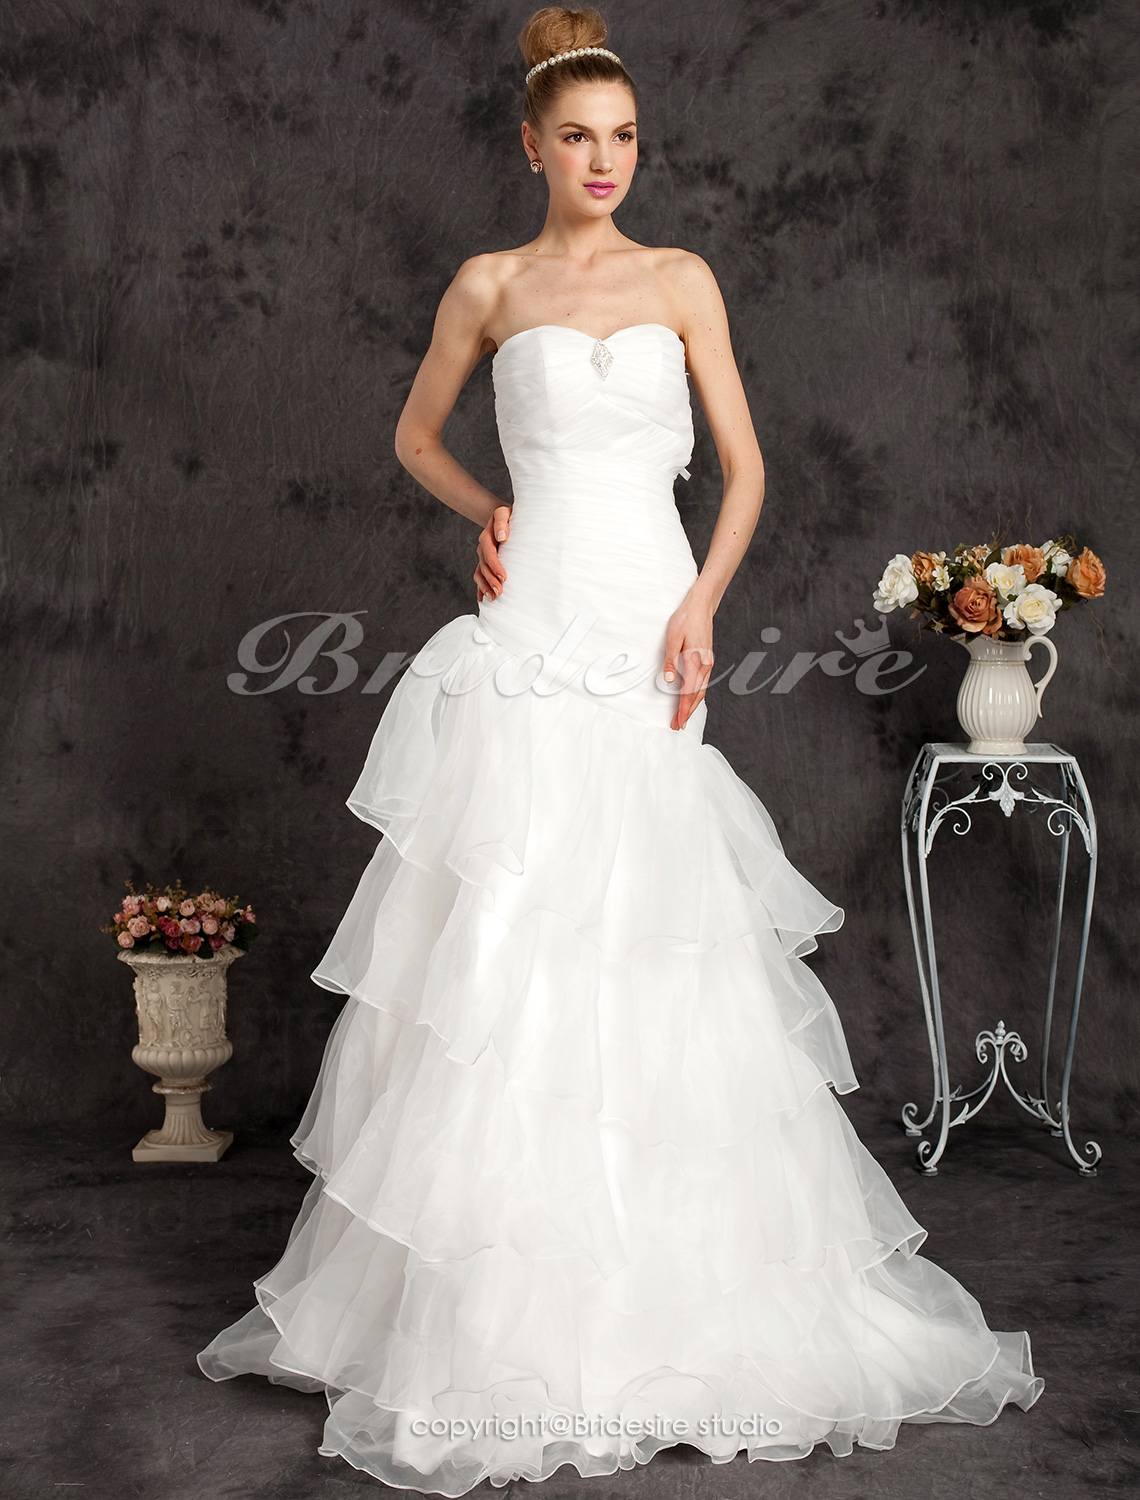 A-line Organza Floor-length Strapless Wedding Dress